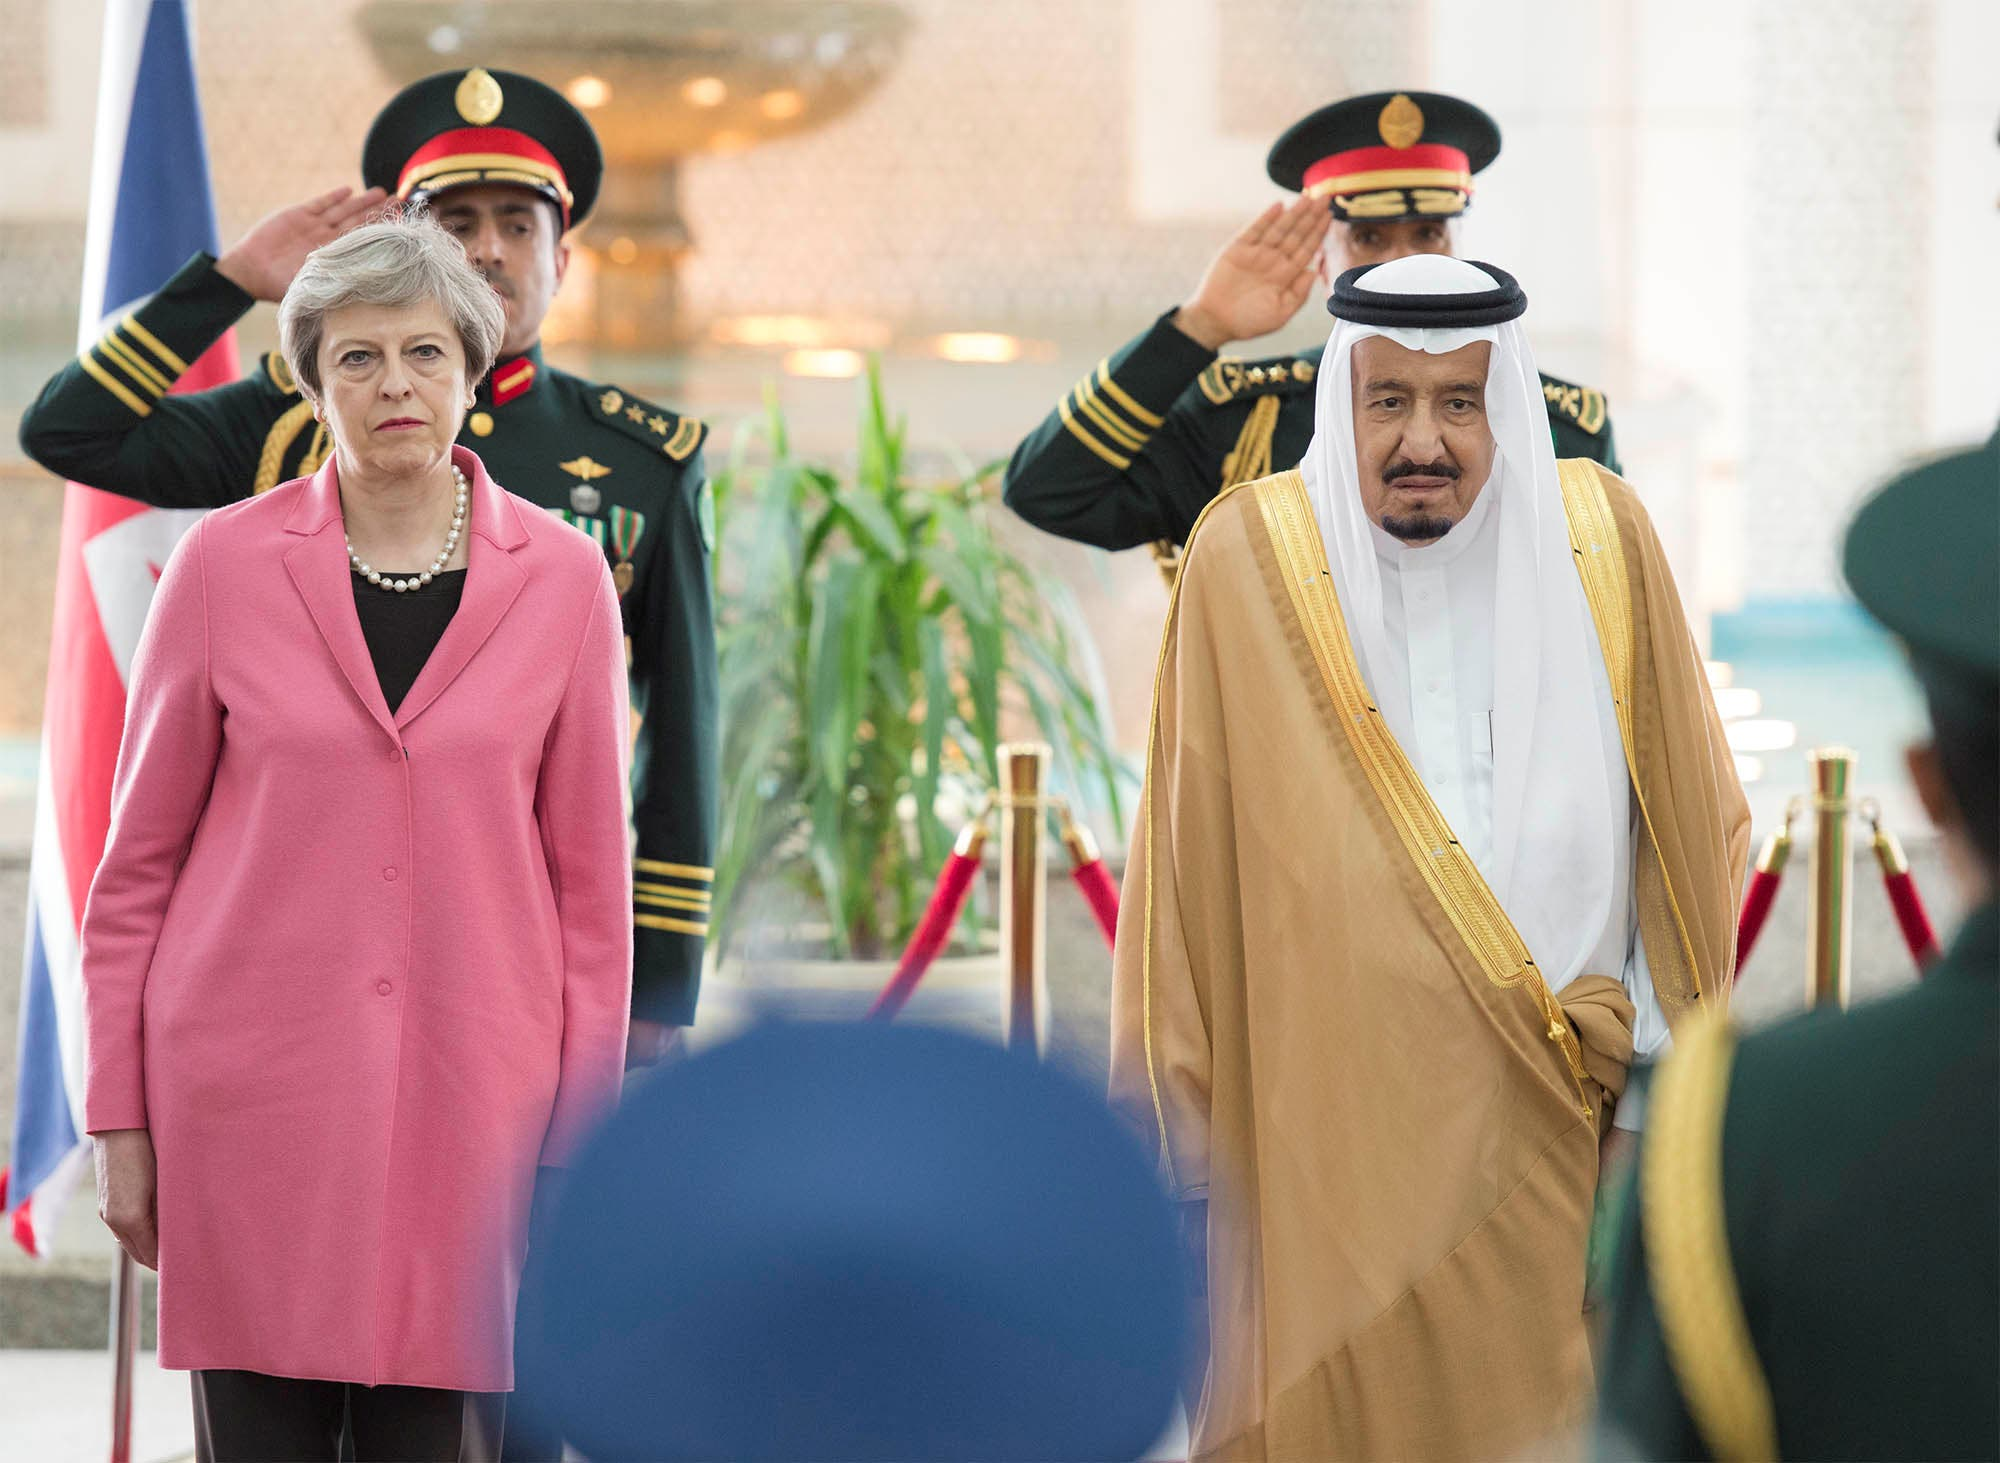 Saudi Arabia's King Salman bin Abdulaziz Al Saud stands next to British Prime Minister Theresa May during a reception ceremony in Riyadh, Saudi Arabia, April 5, 2017. Bandar Algaloud/Courtesy of Saudi Royal Court/Handout via REUTERS ATTENTION EDITORS - THIS PICTURE WAS PROVIDED BY A THIRD PARTY. FOR EDITORIAL USE ONLY.